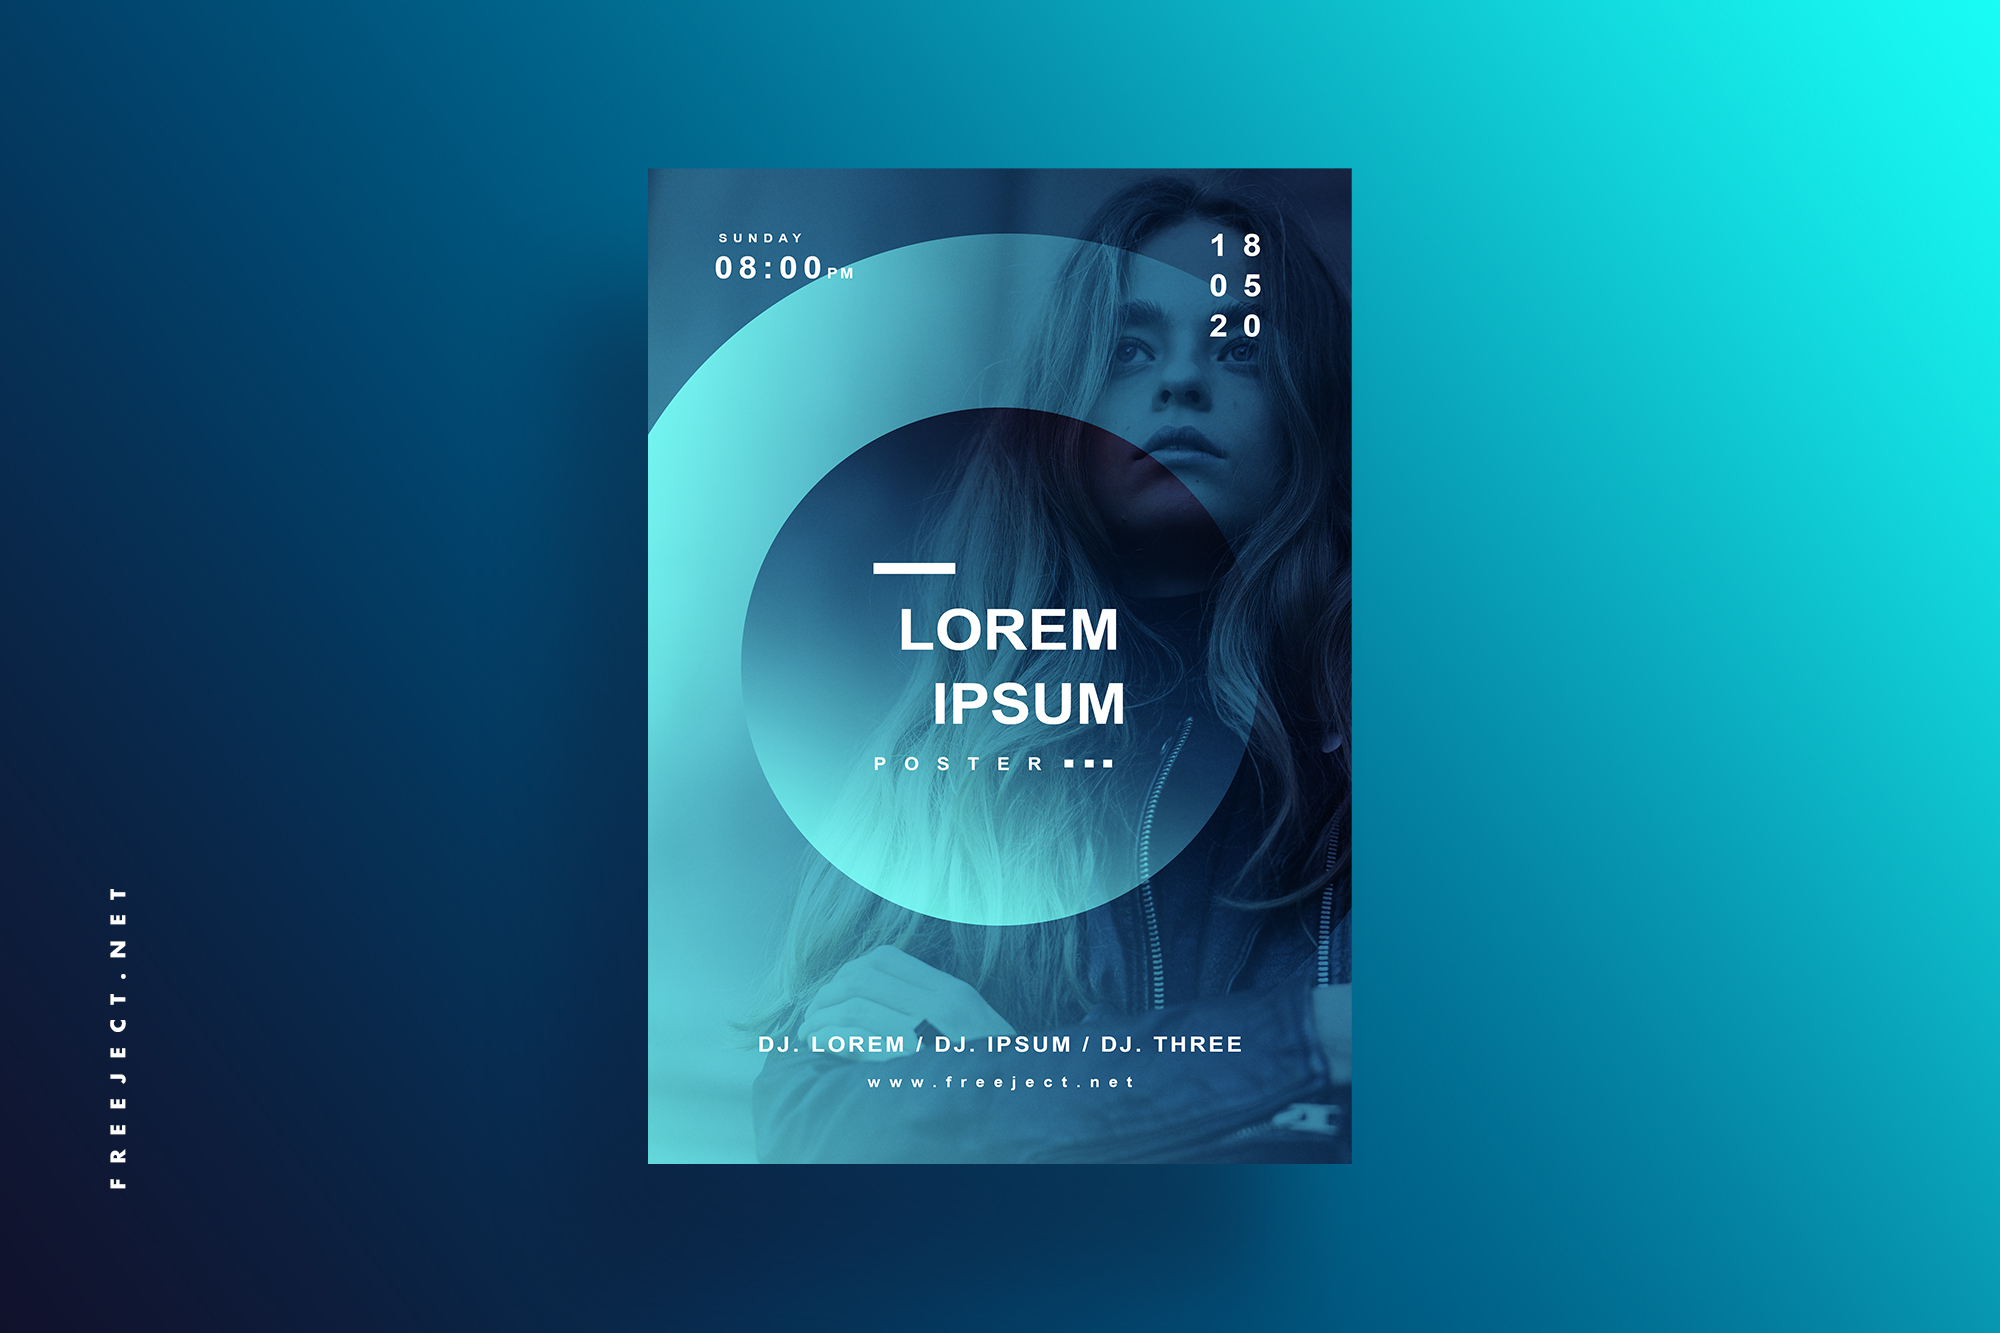 Free Download Blue Gradient Music Event Poster Design Template Psd File Freeject